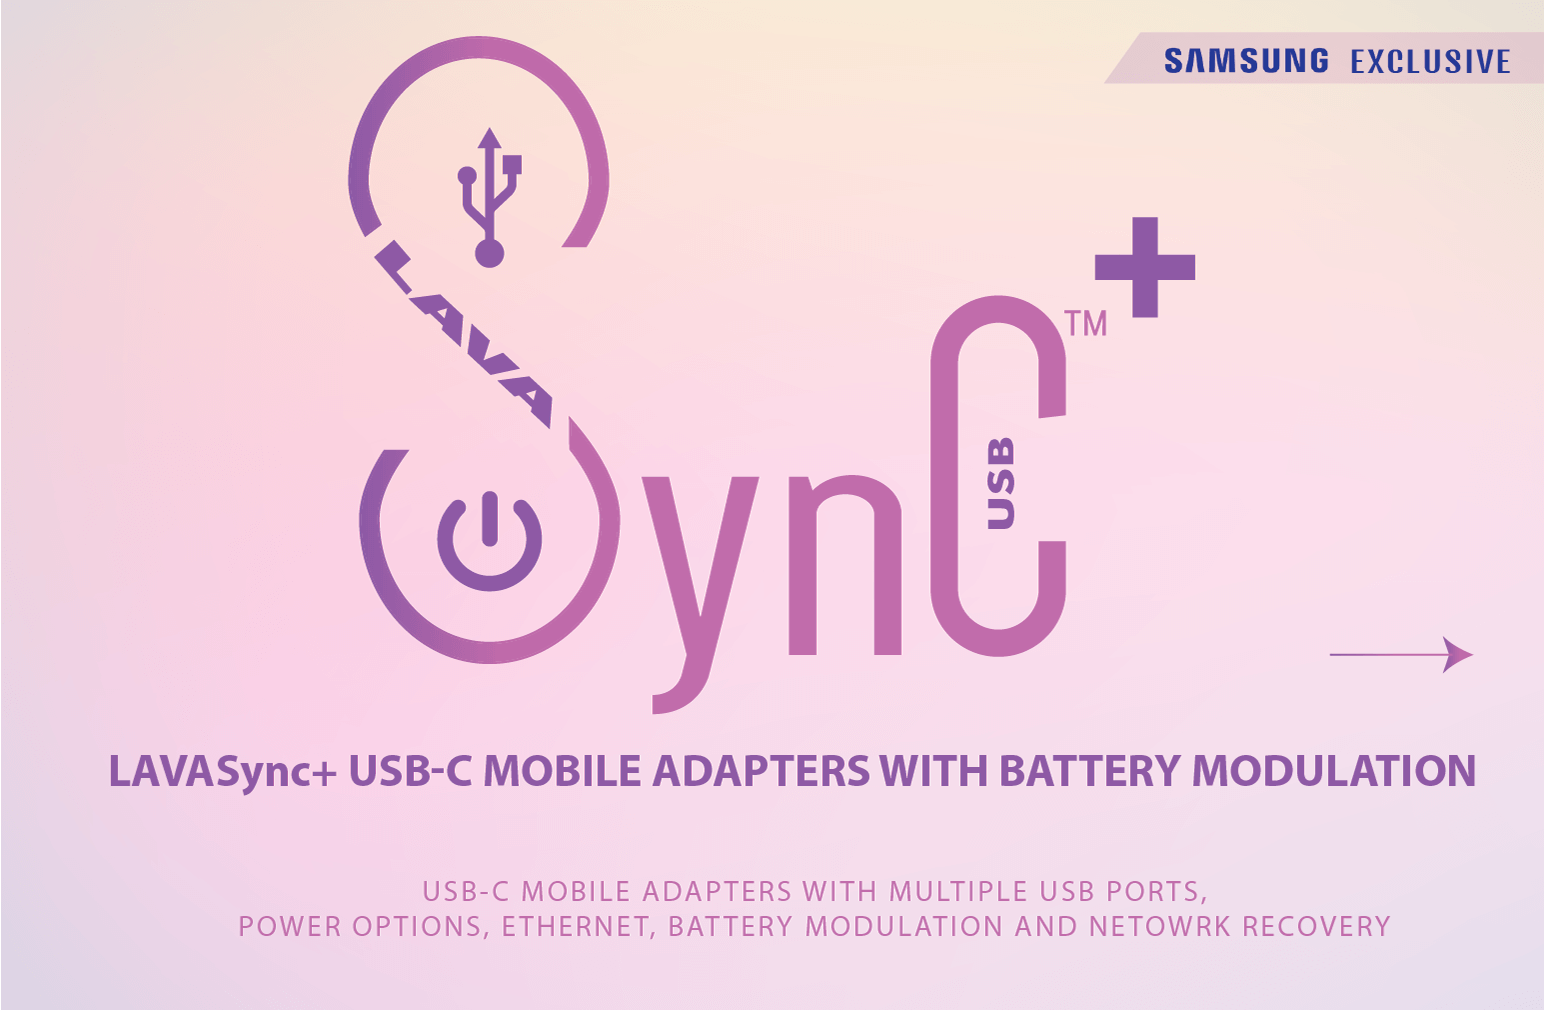 LAVASync+ USB-C adapters for Samsung